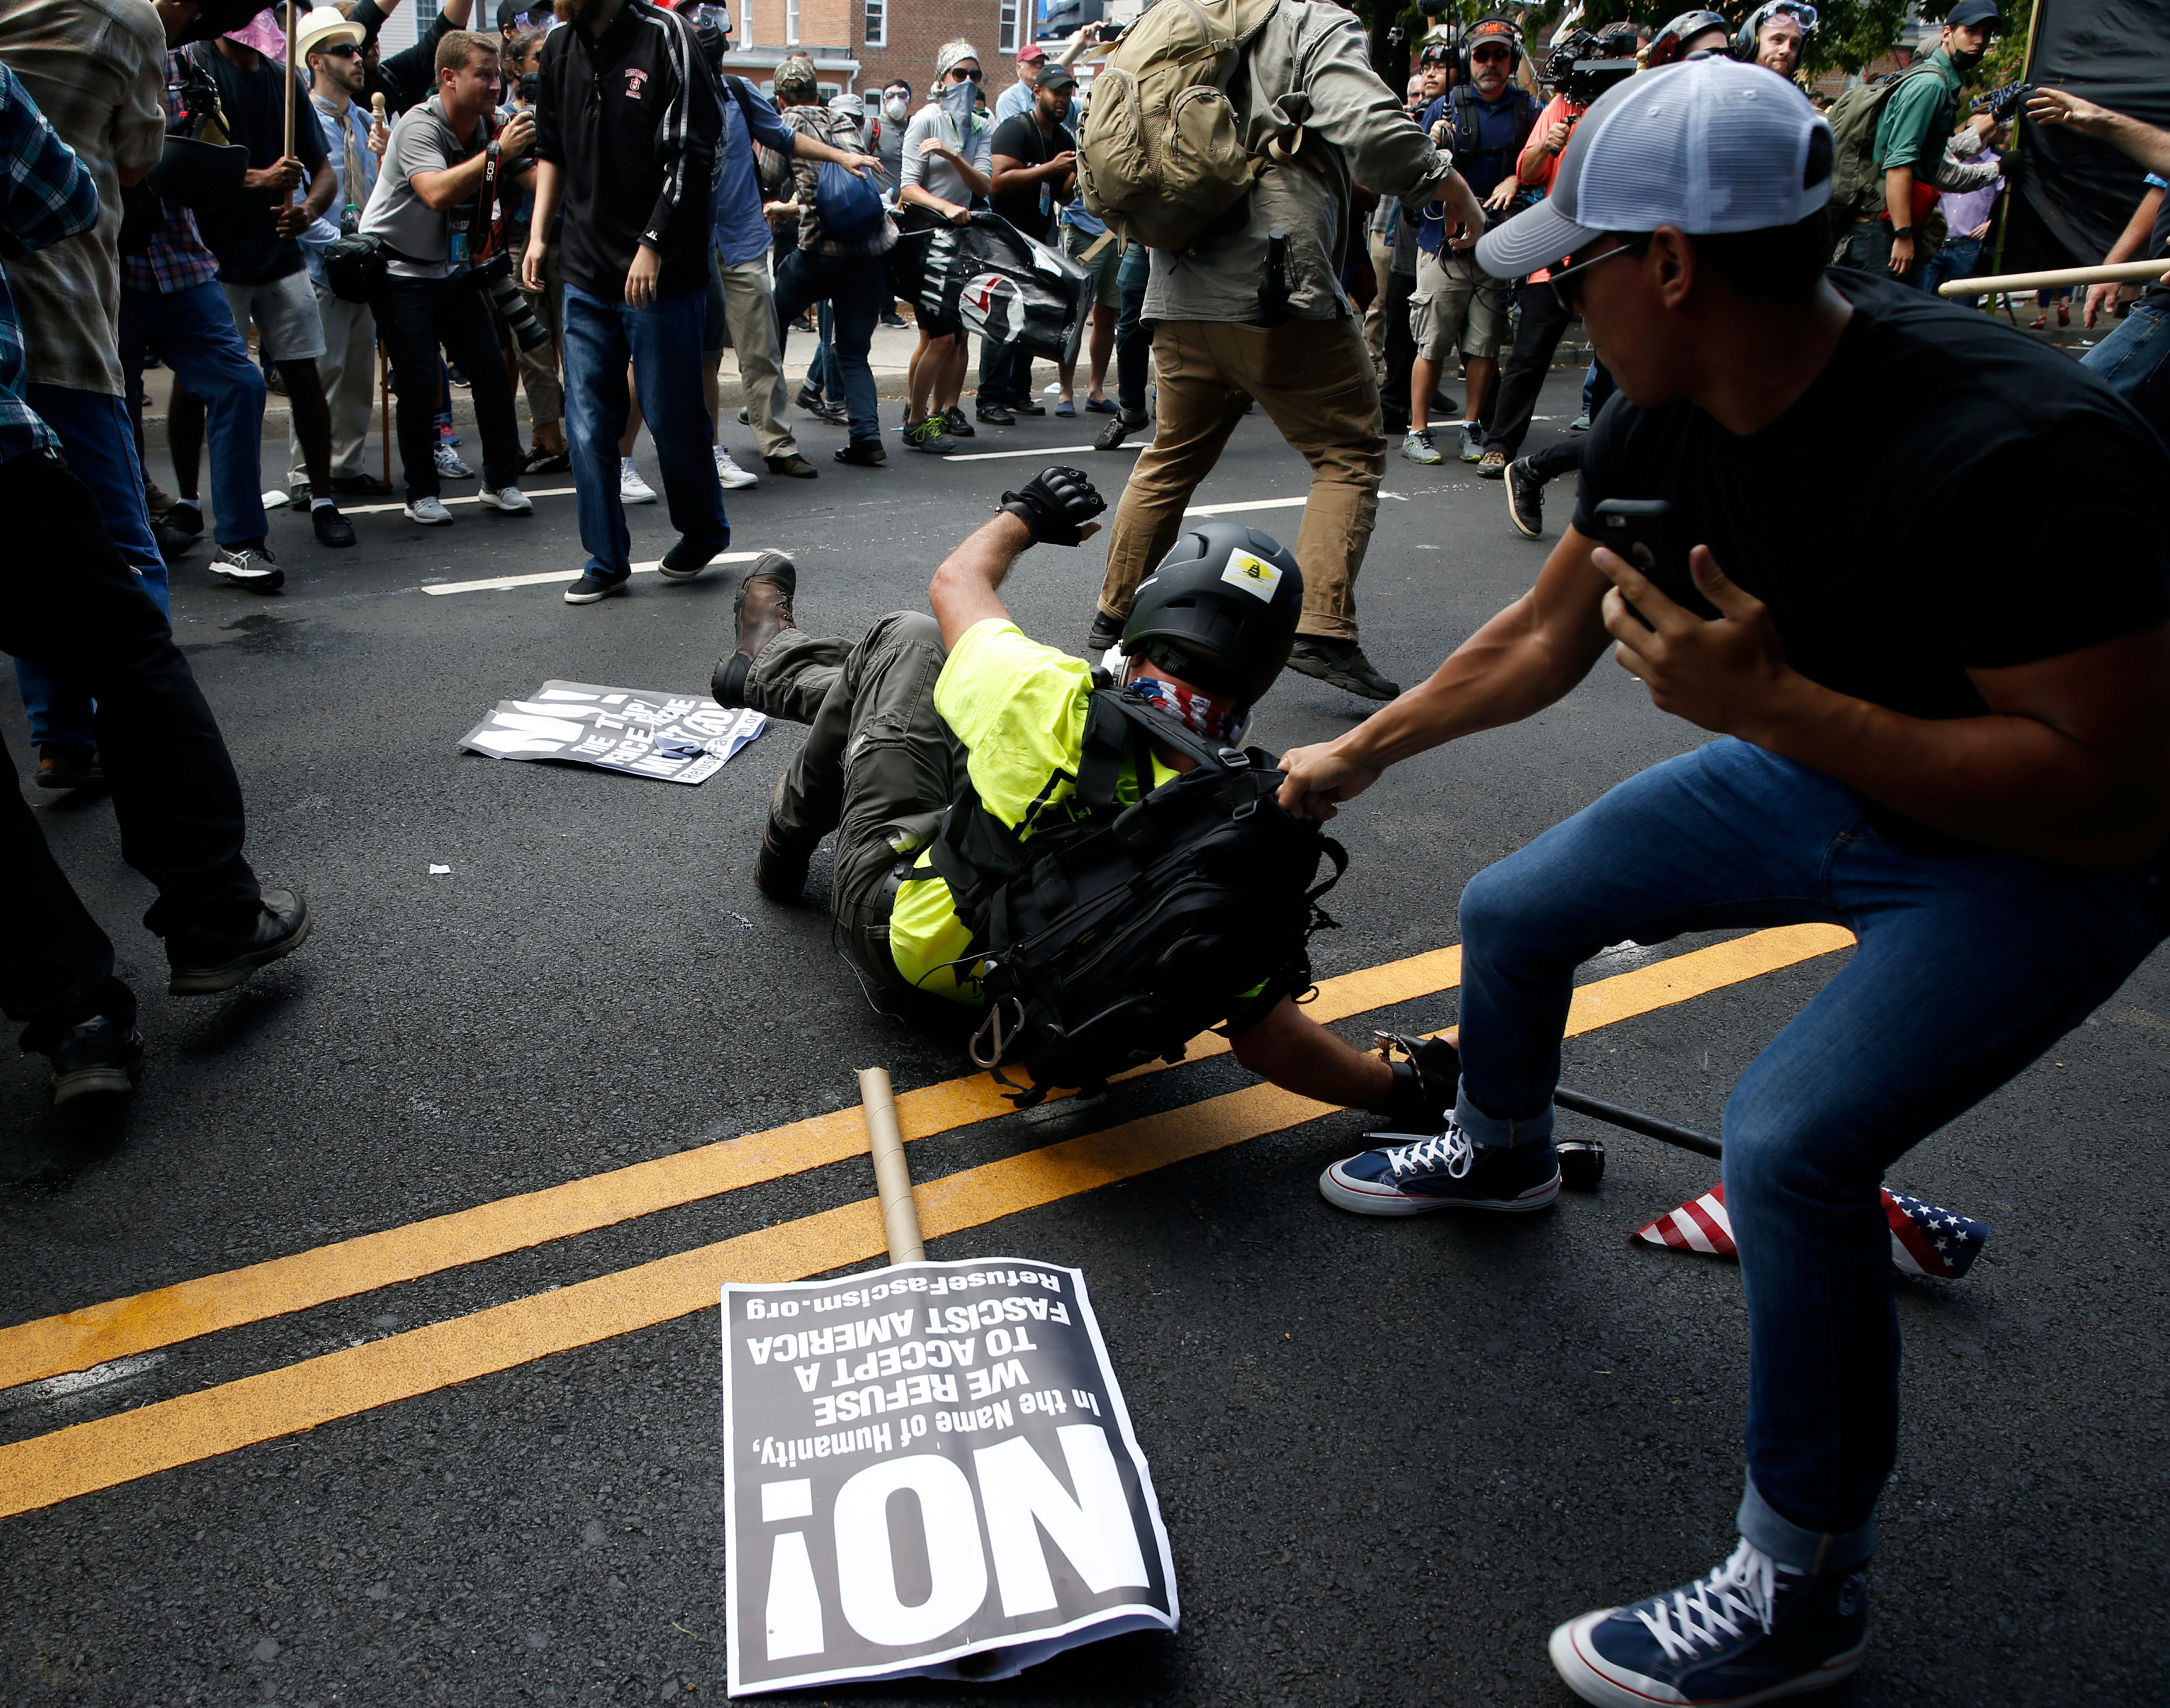 2017 08 12T174742Z 1670446047 RC13D66470A0 RTRMADP 3 VIRGINIA PROTESTS